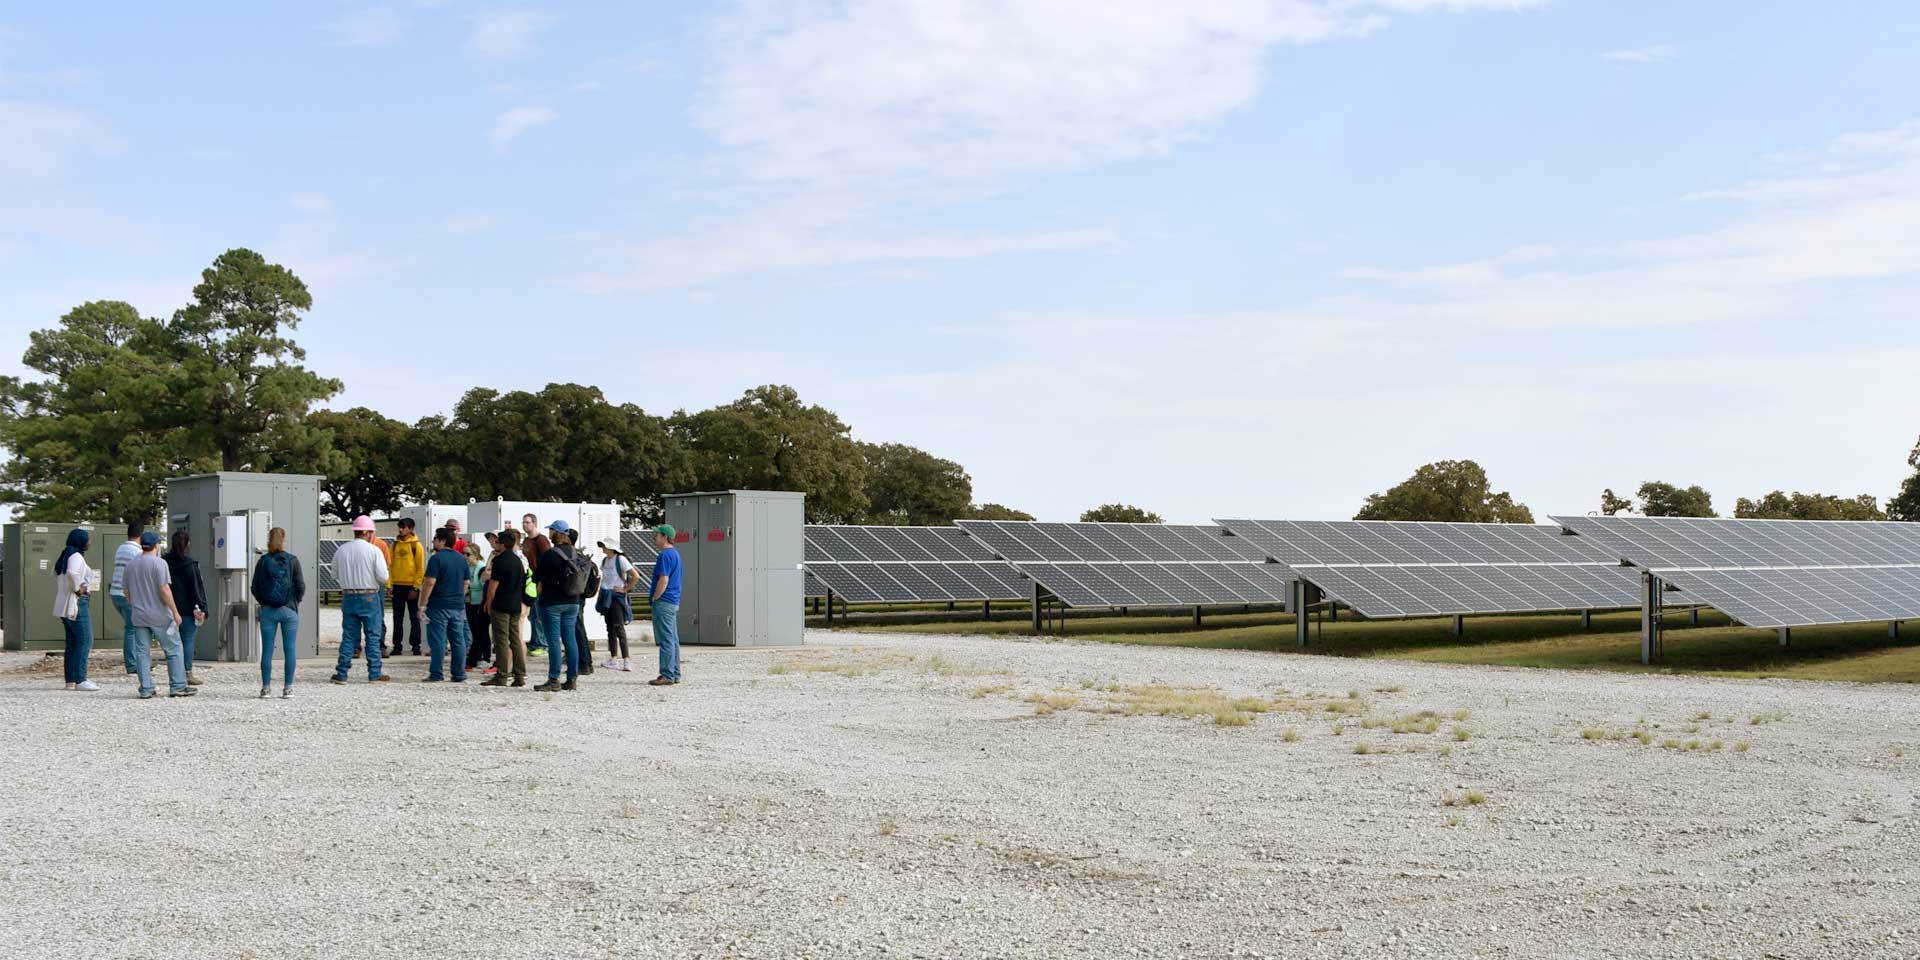 Master's in Energy Management students on a site visit to a solar installation